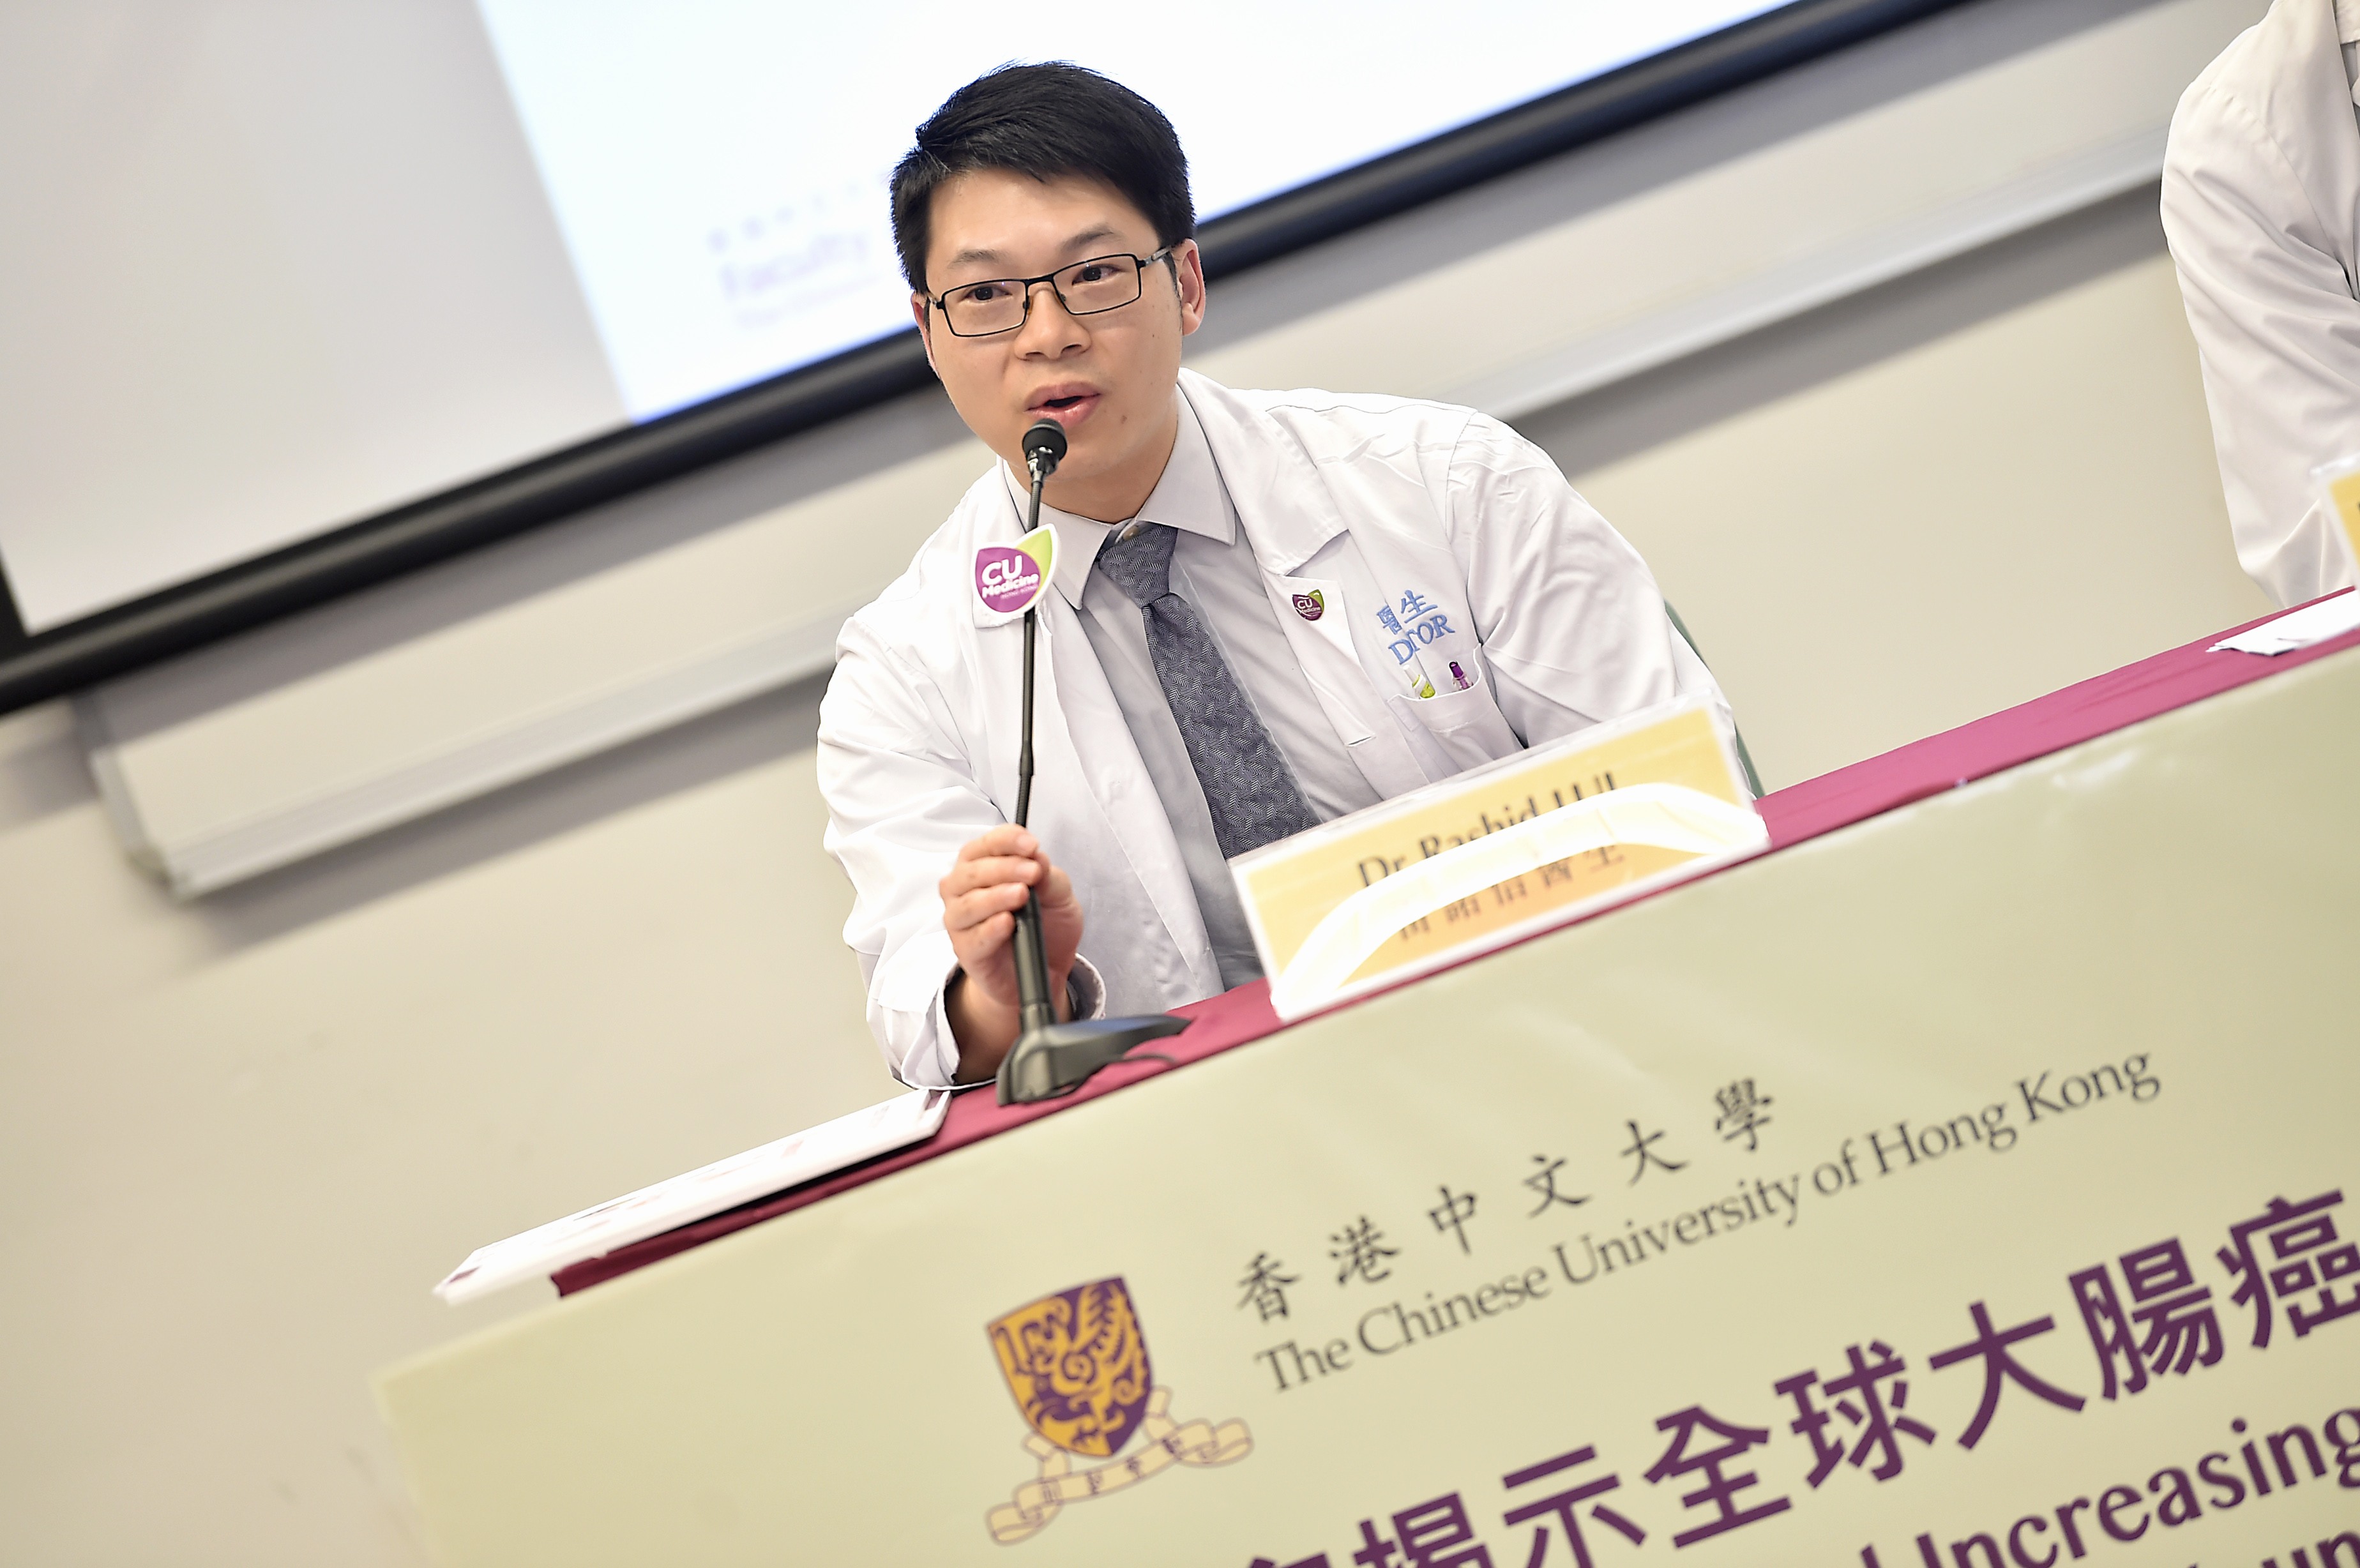 Dr Rashid LUI hopes the recent study can raise the public awareness of the shift towards colorectal cancer incidence in the younger population.